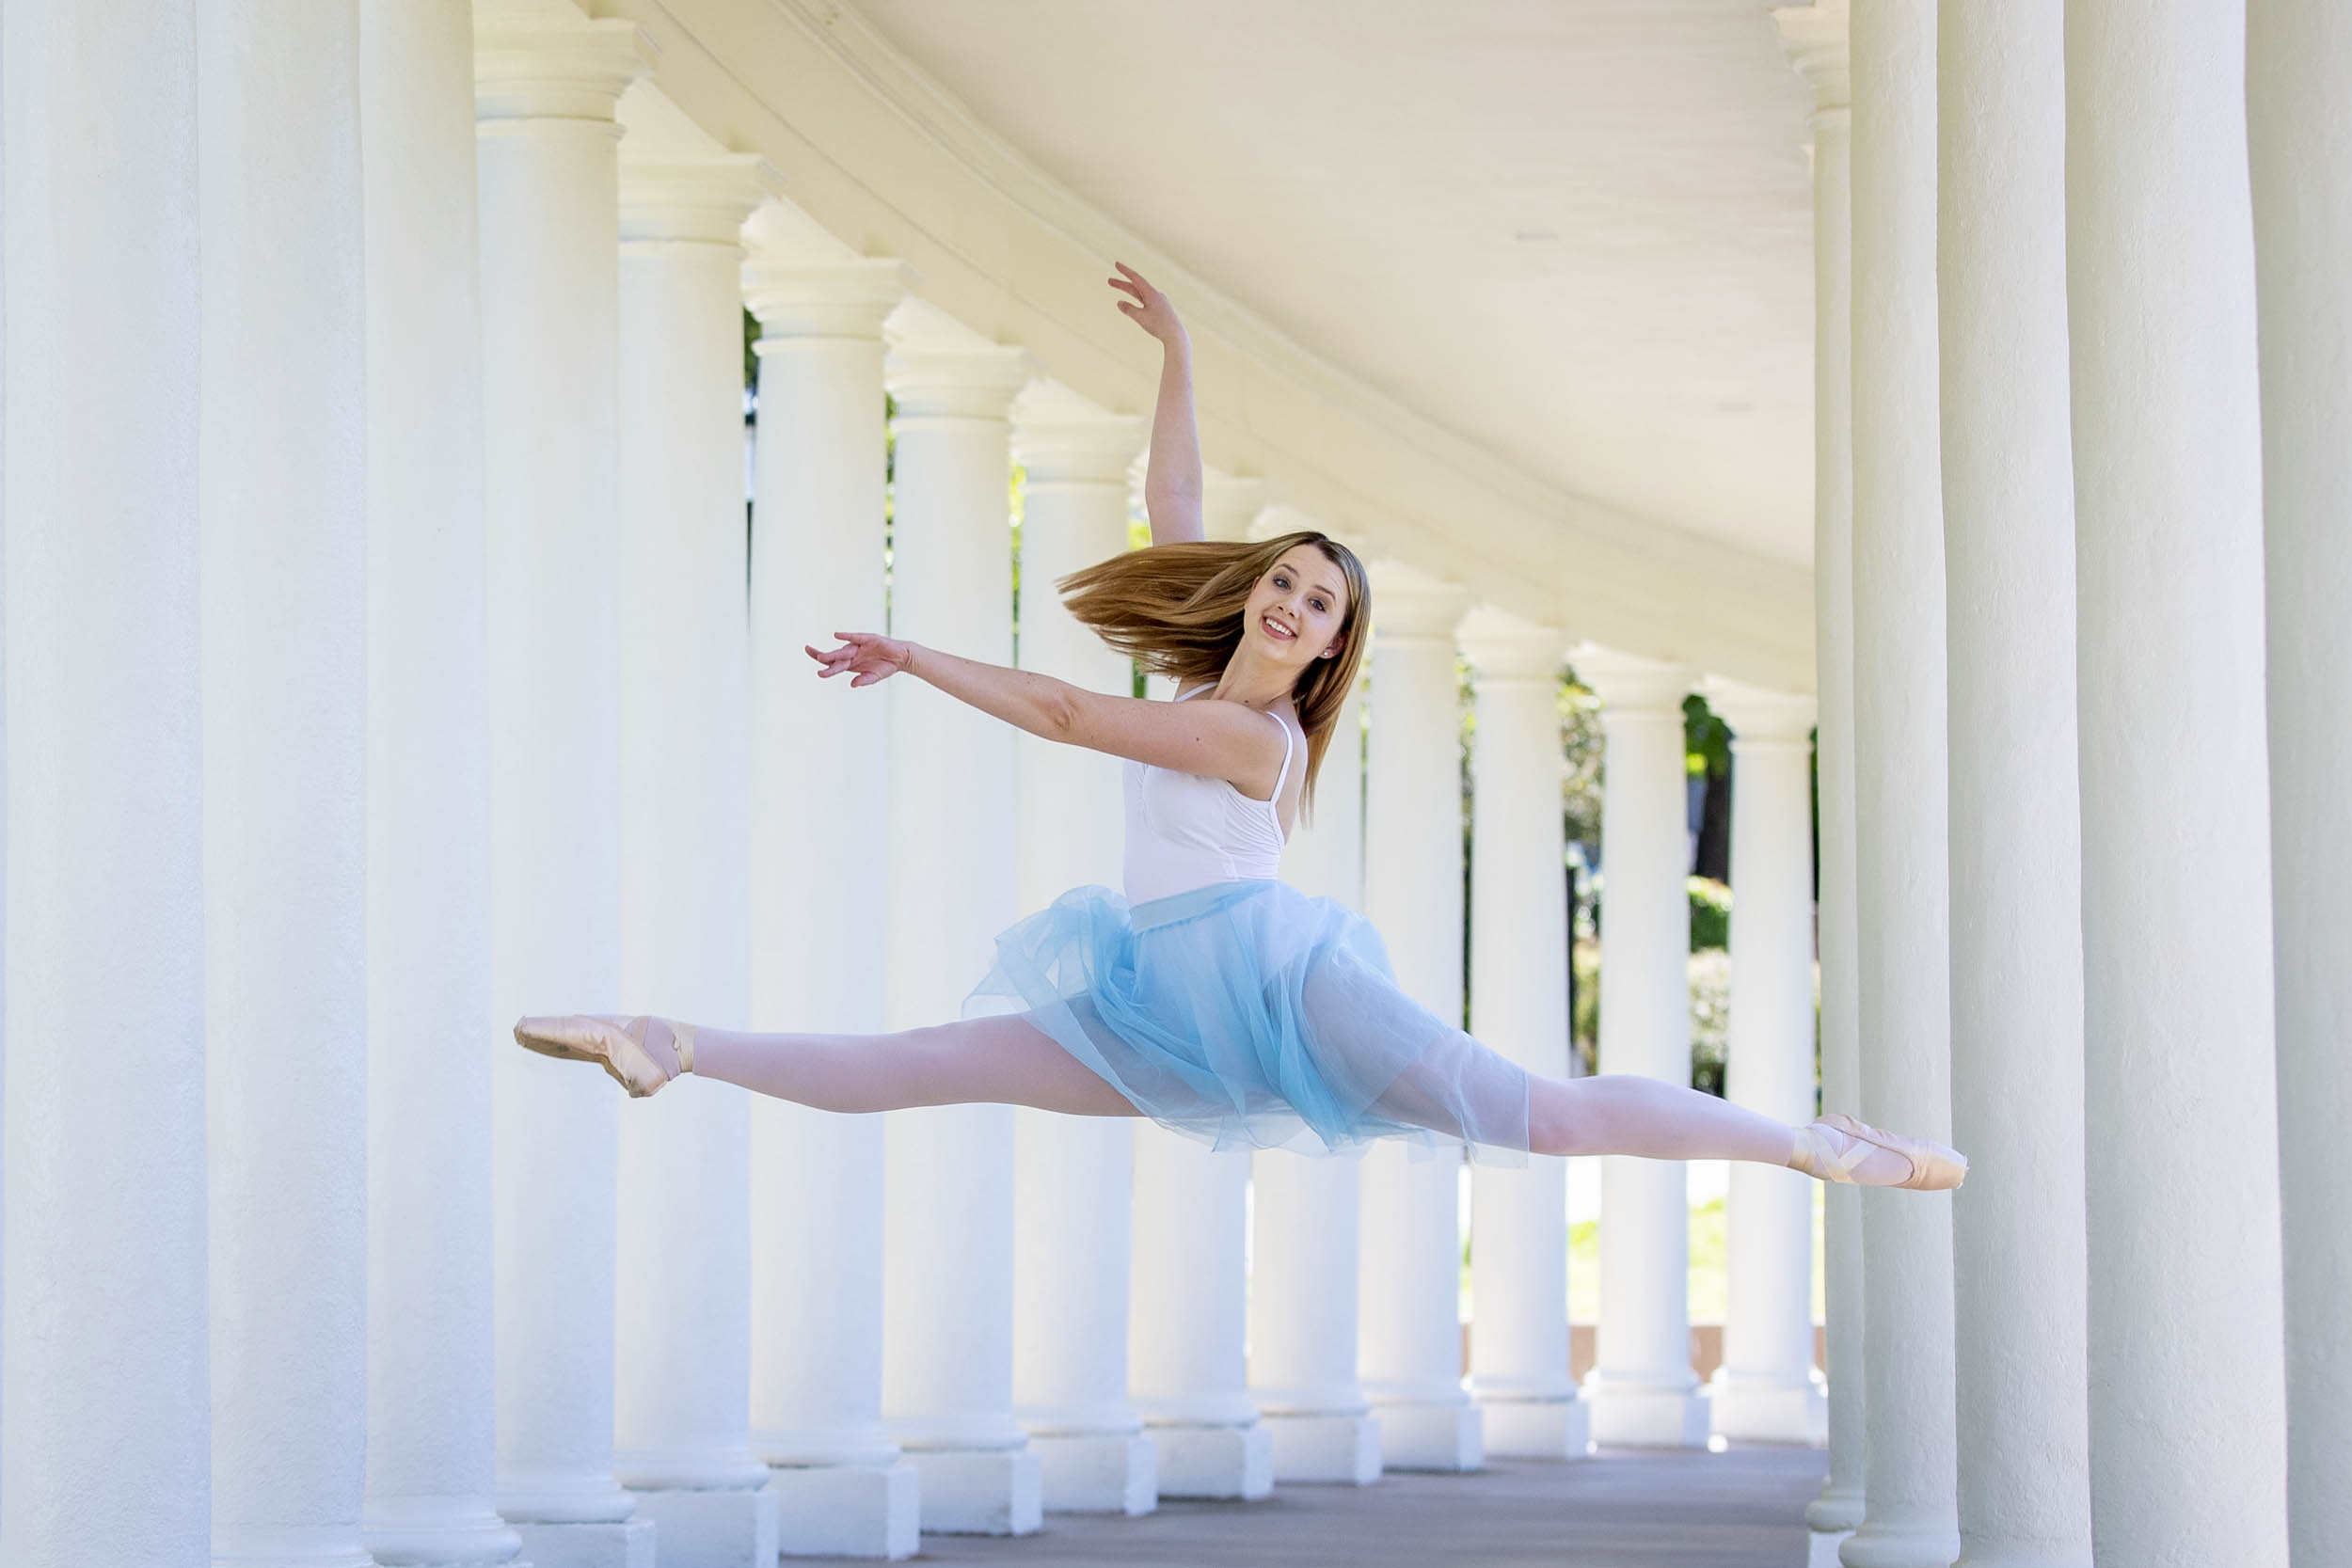 Mid-flight in life, Sarah Alexander is poised to tackle public policy and work after college – and also plans to keep dancing.